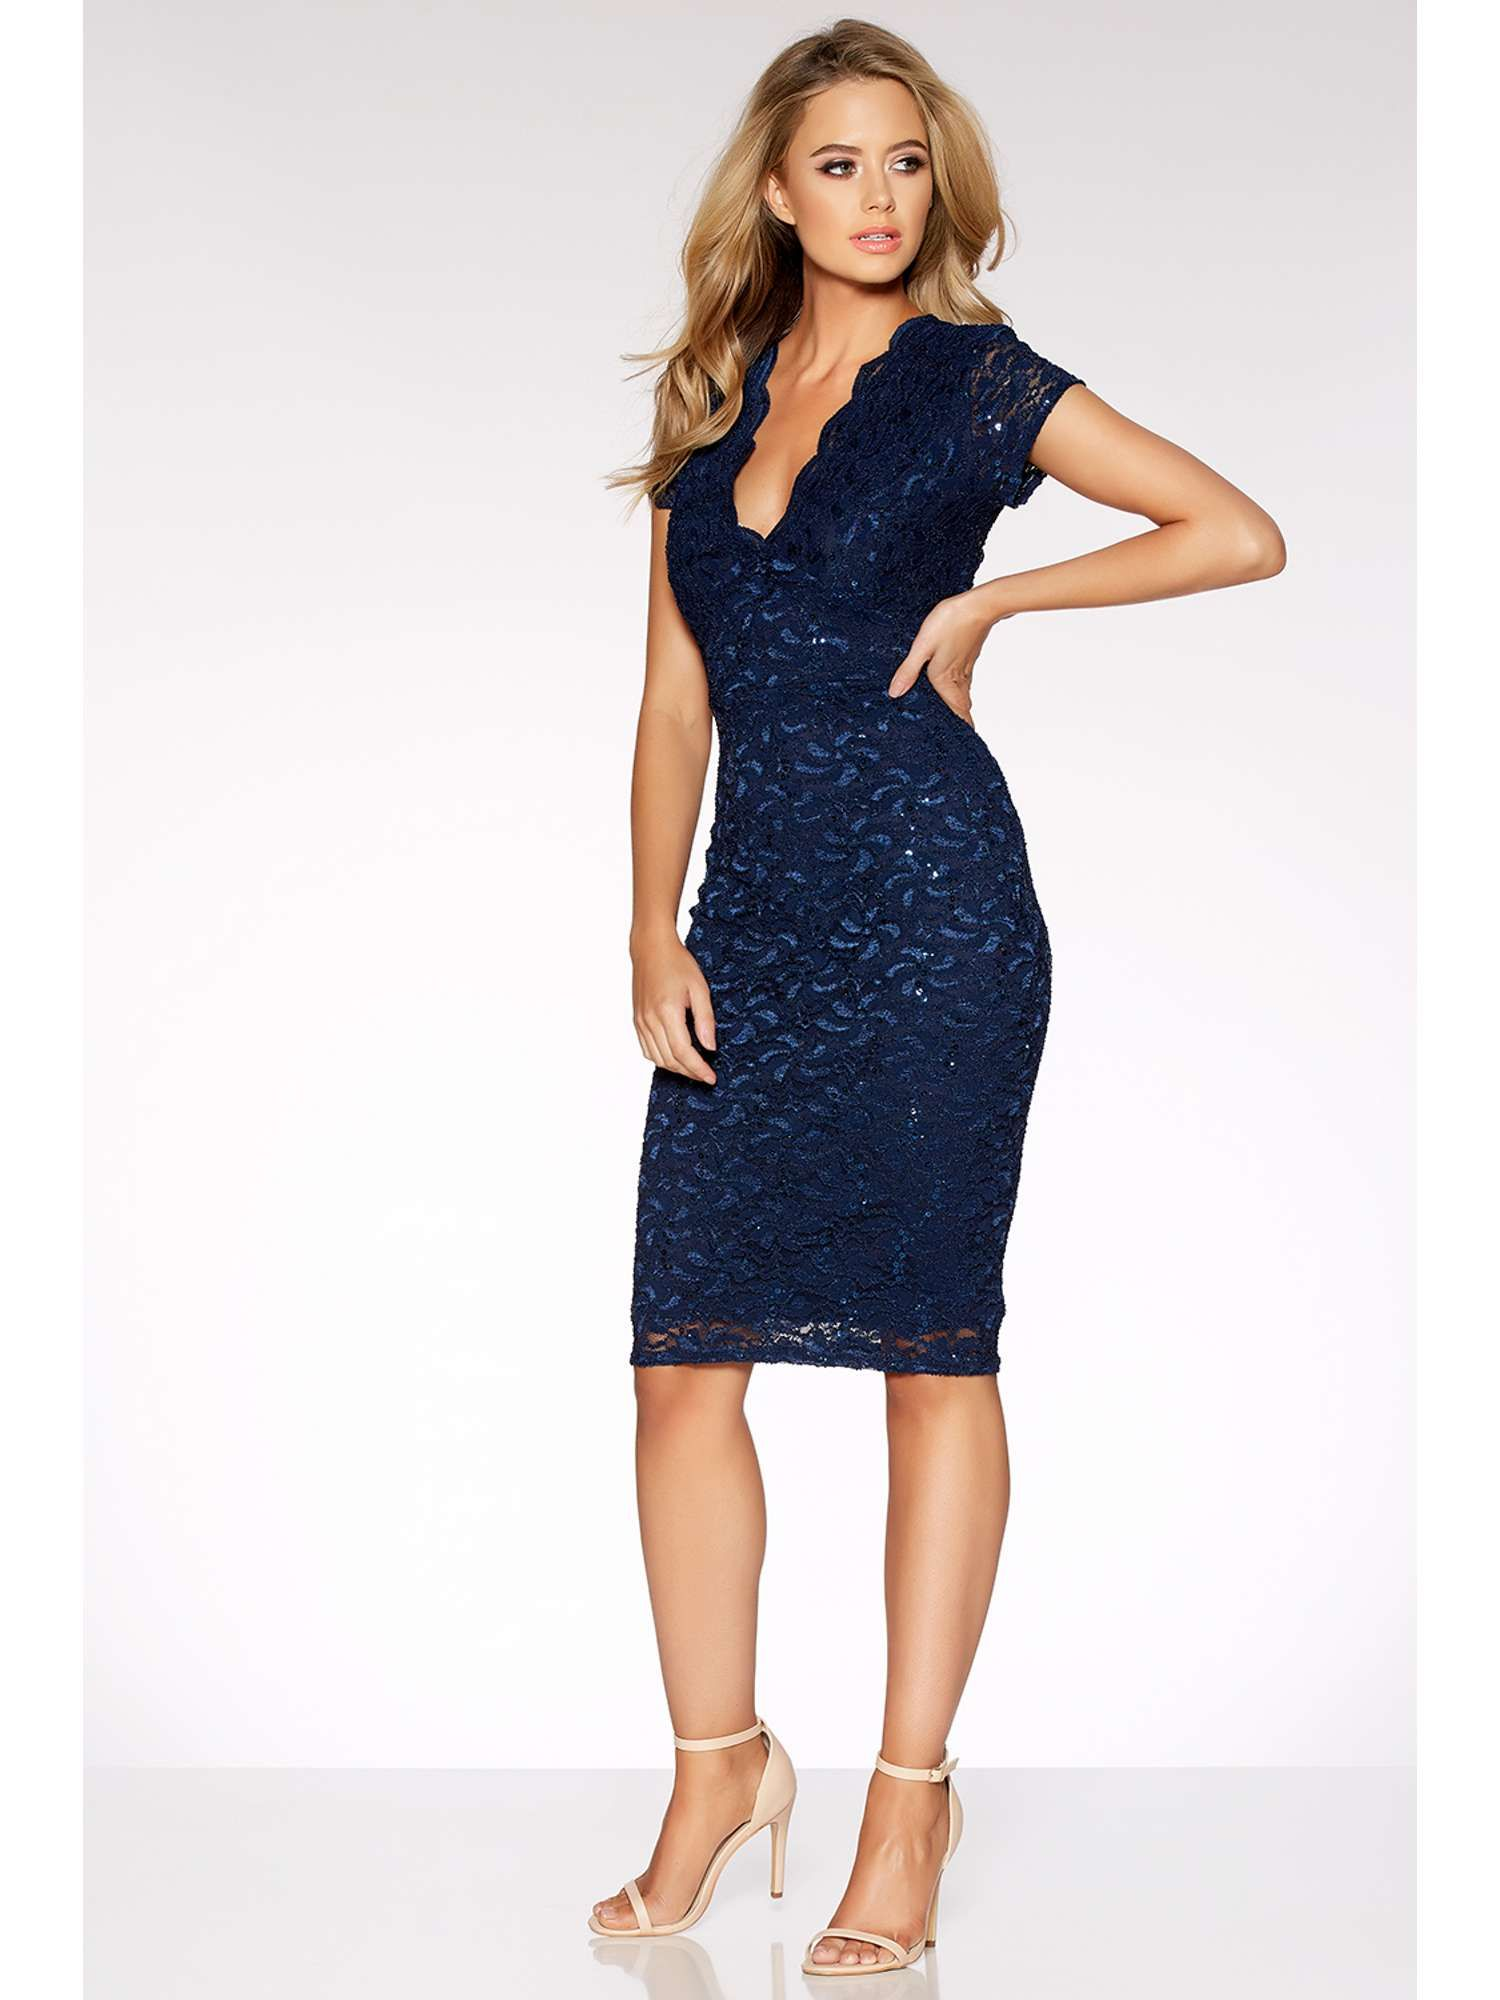 d5dff7a38f0 £36 --- House of Fraser - Quiz Navy Sequin Lace Cap Sleeve Midi Dress in  Navy -- Perfect cruise attire!